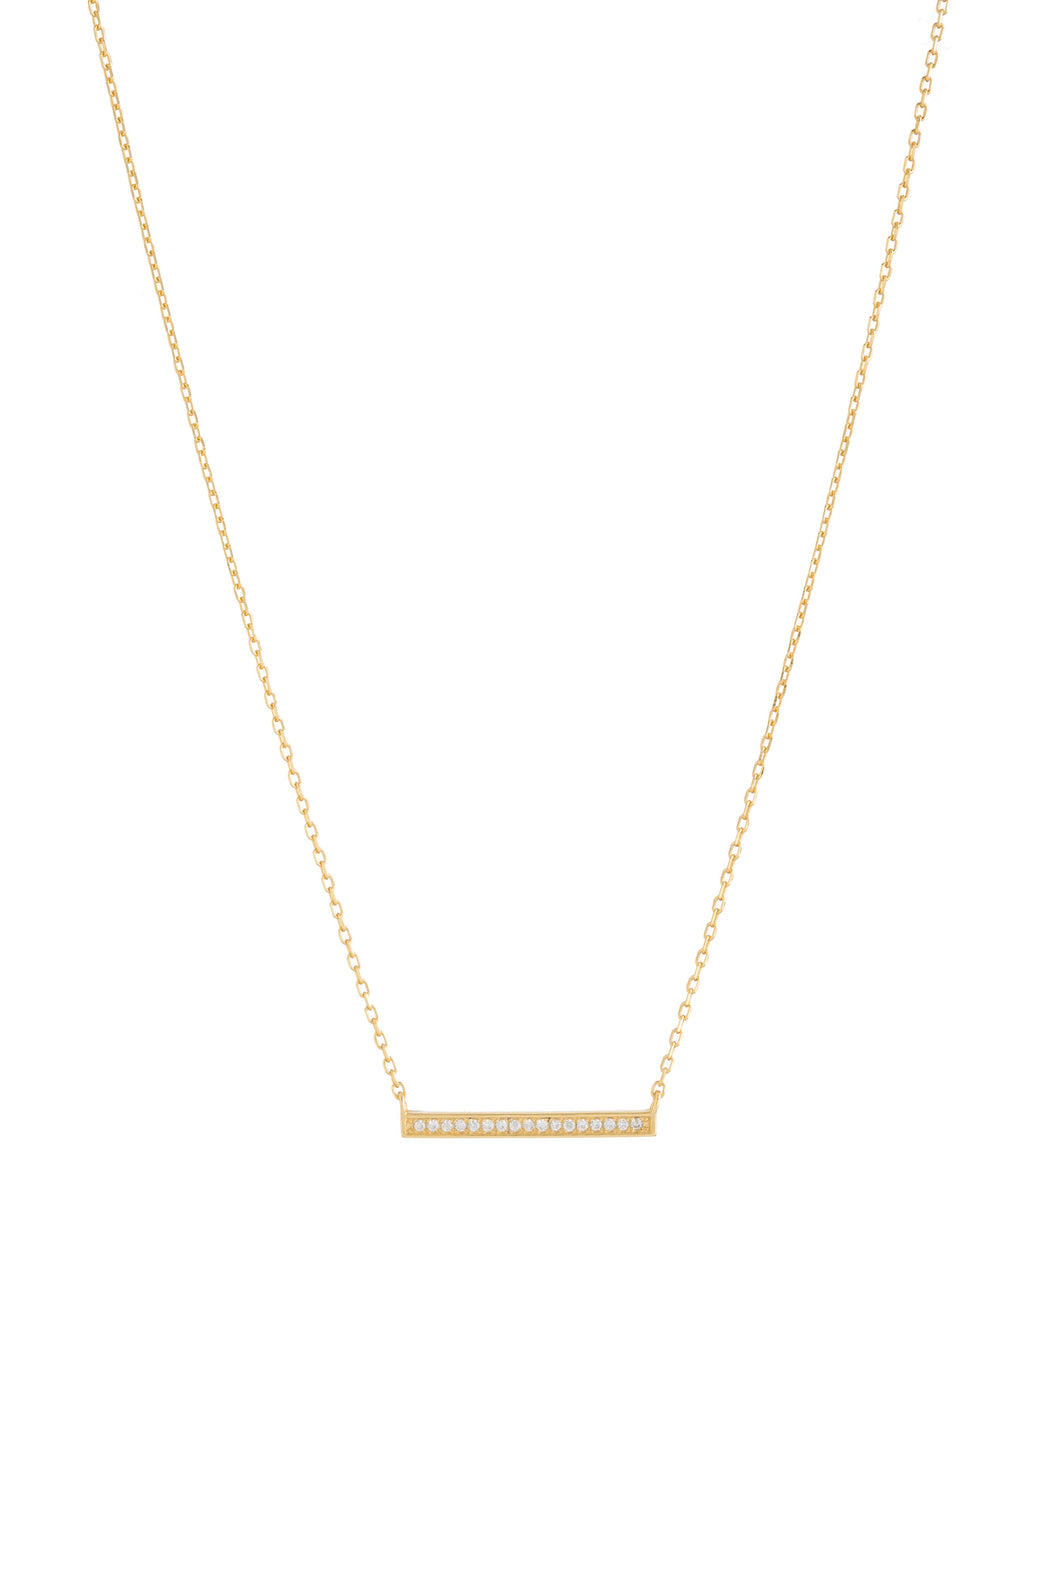 BAR SMALL CZ NECKLACE